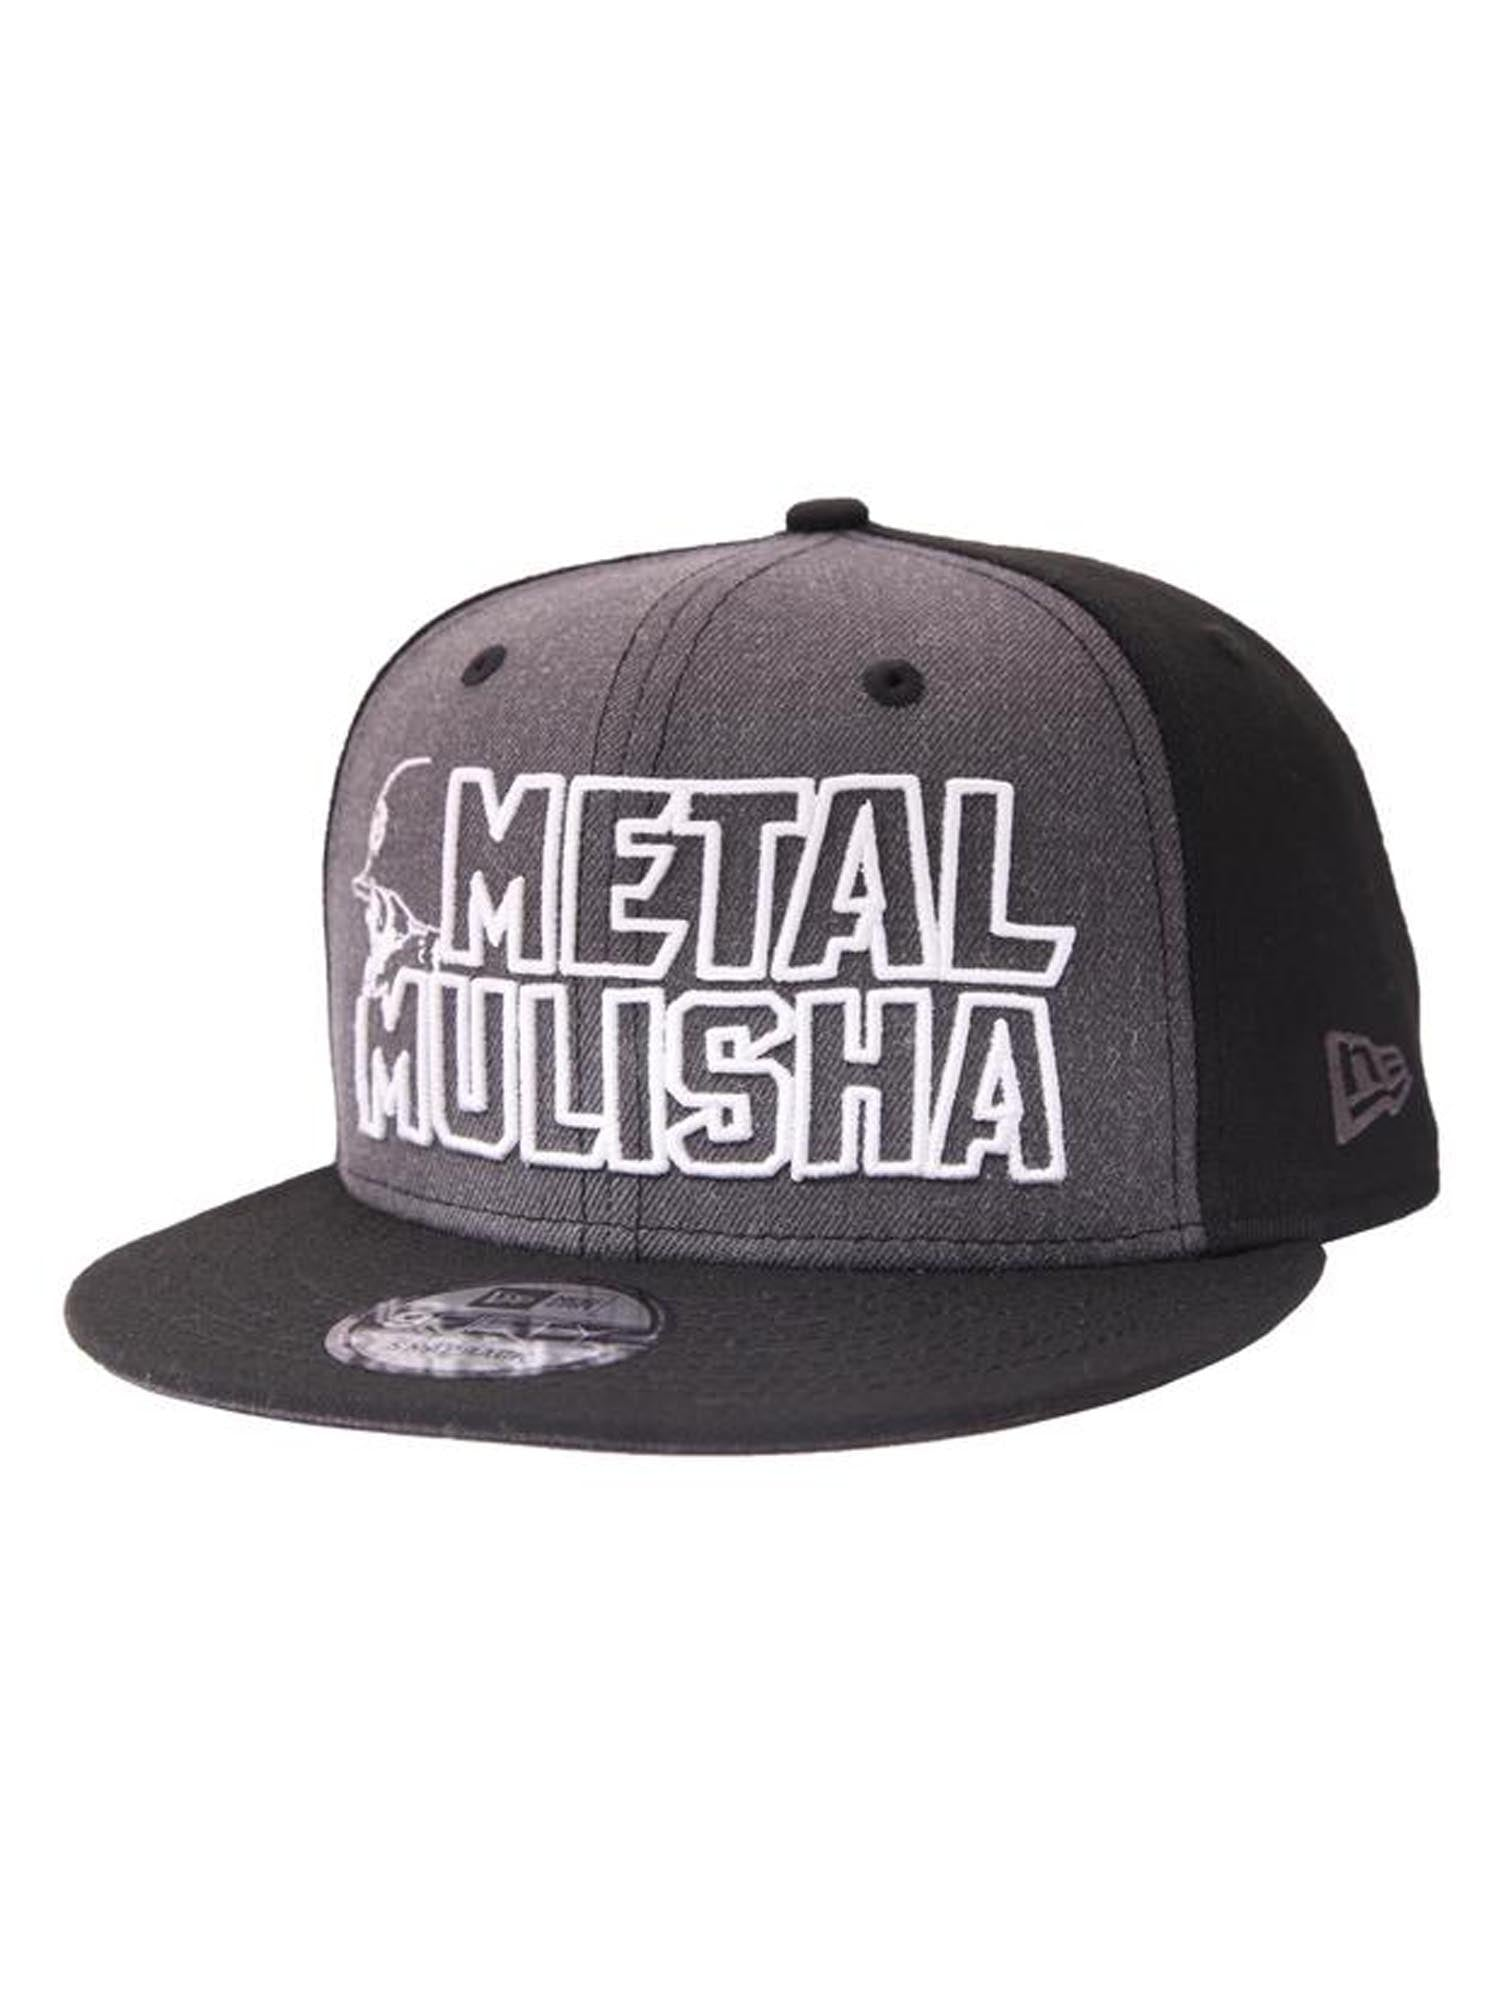 Metal Mulisha Men  039 s Cast New Era Snapback Hat Skull and Helmet ... 7166fba25e3f